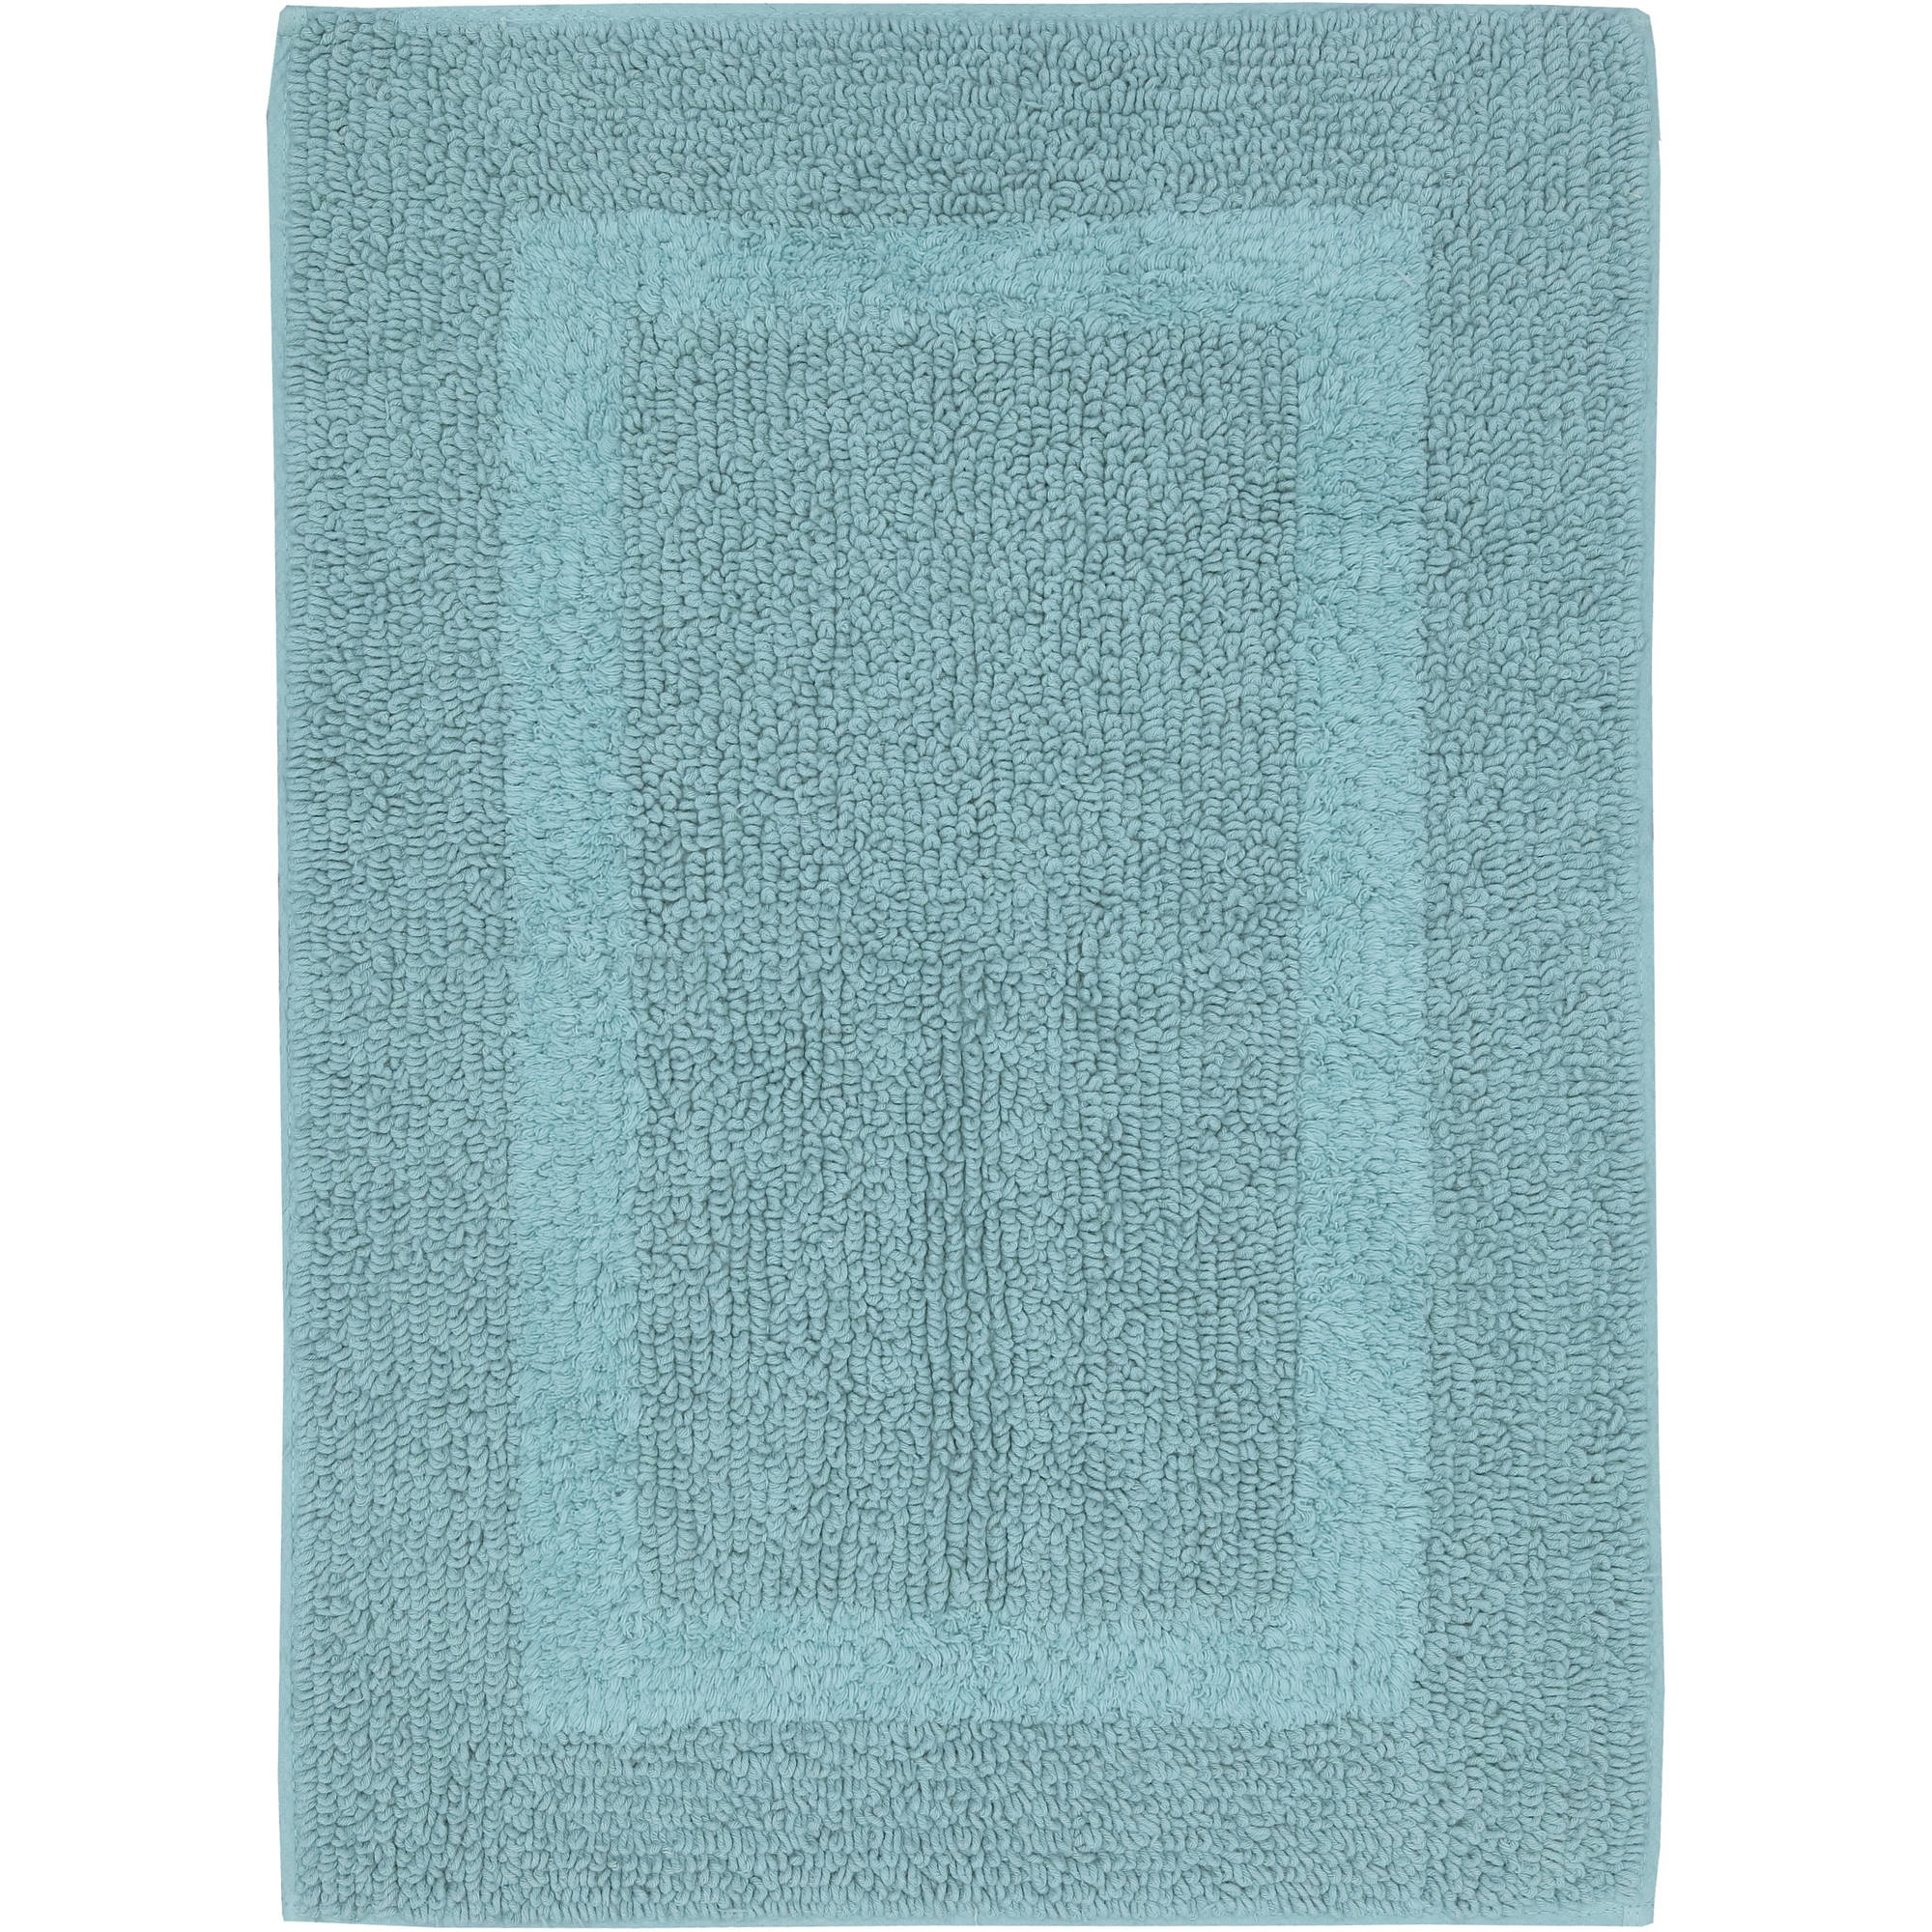 Taupe Colored Bath Rugs